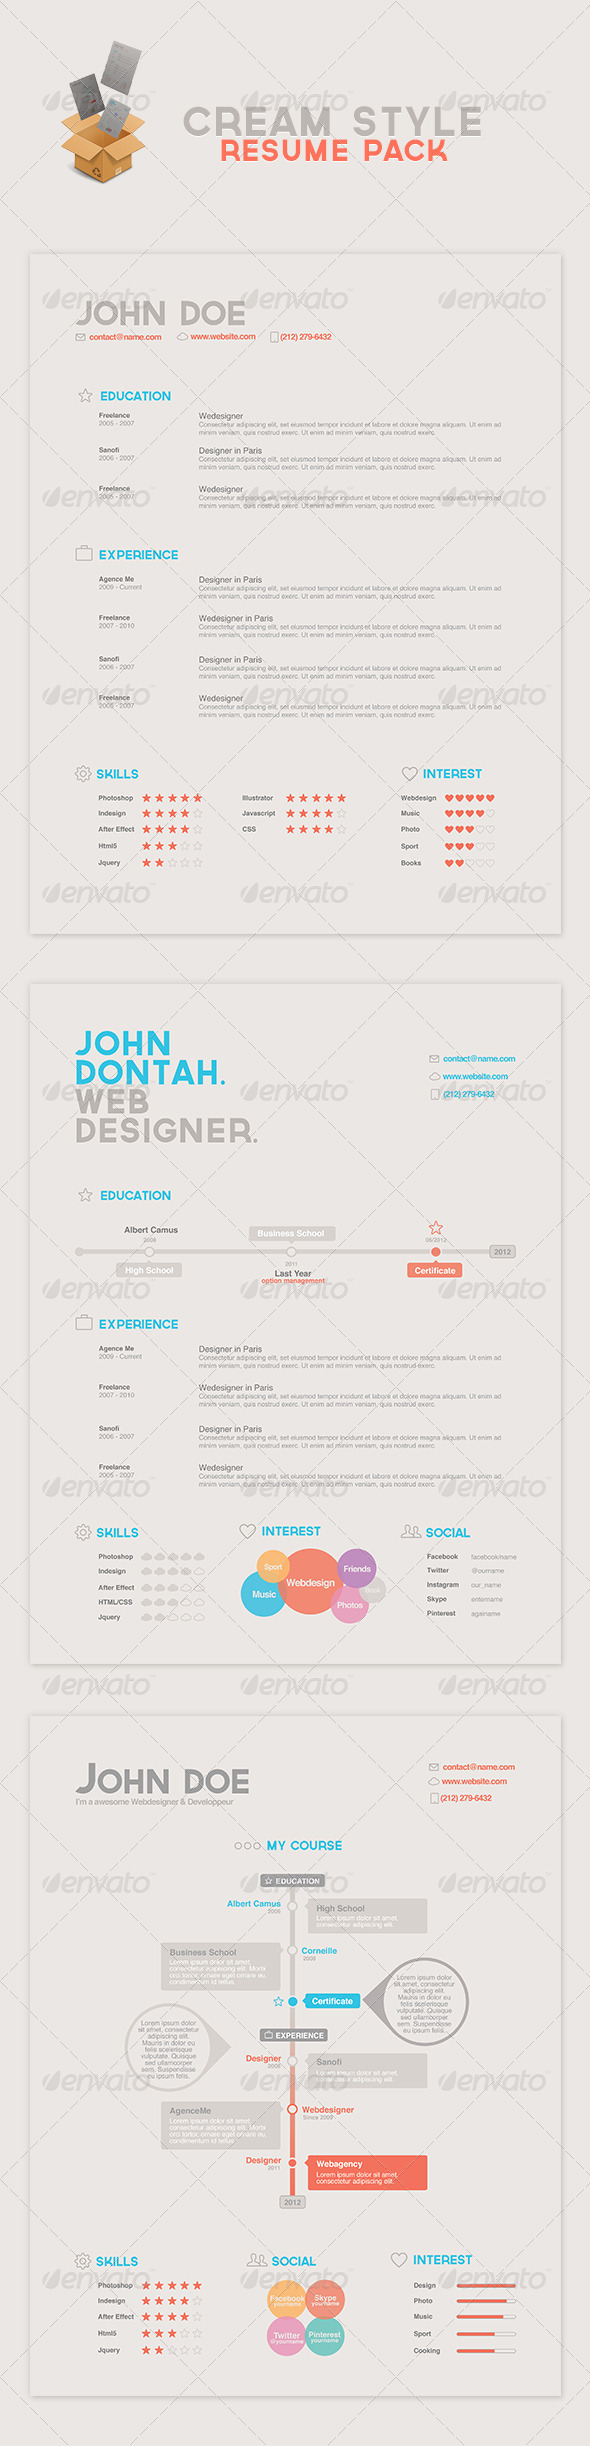 Cream Style Resume Pack - Resumes Stationery